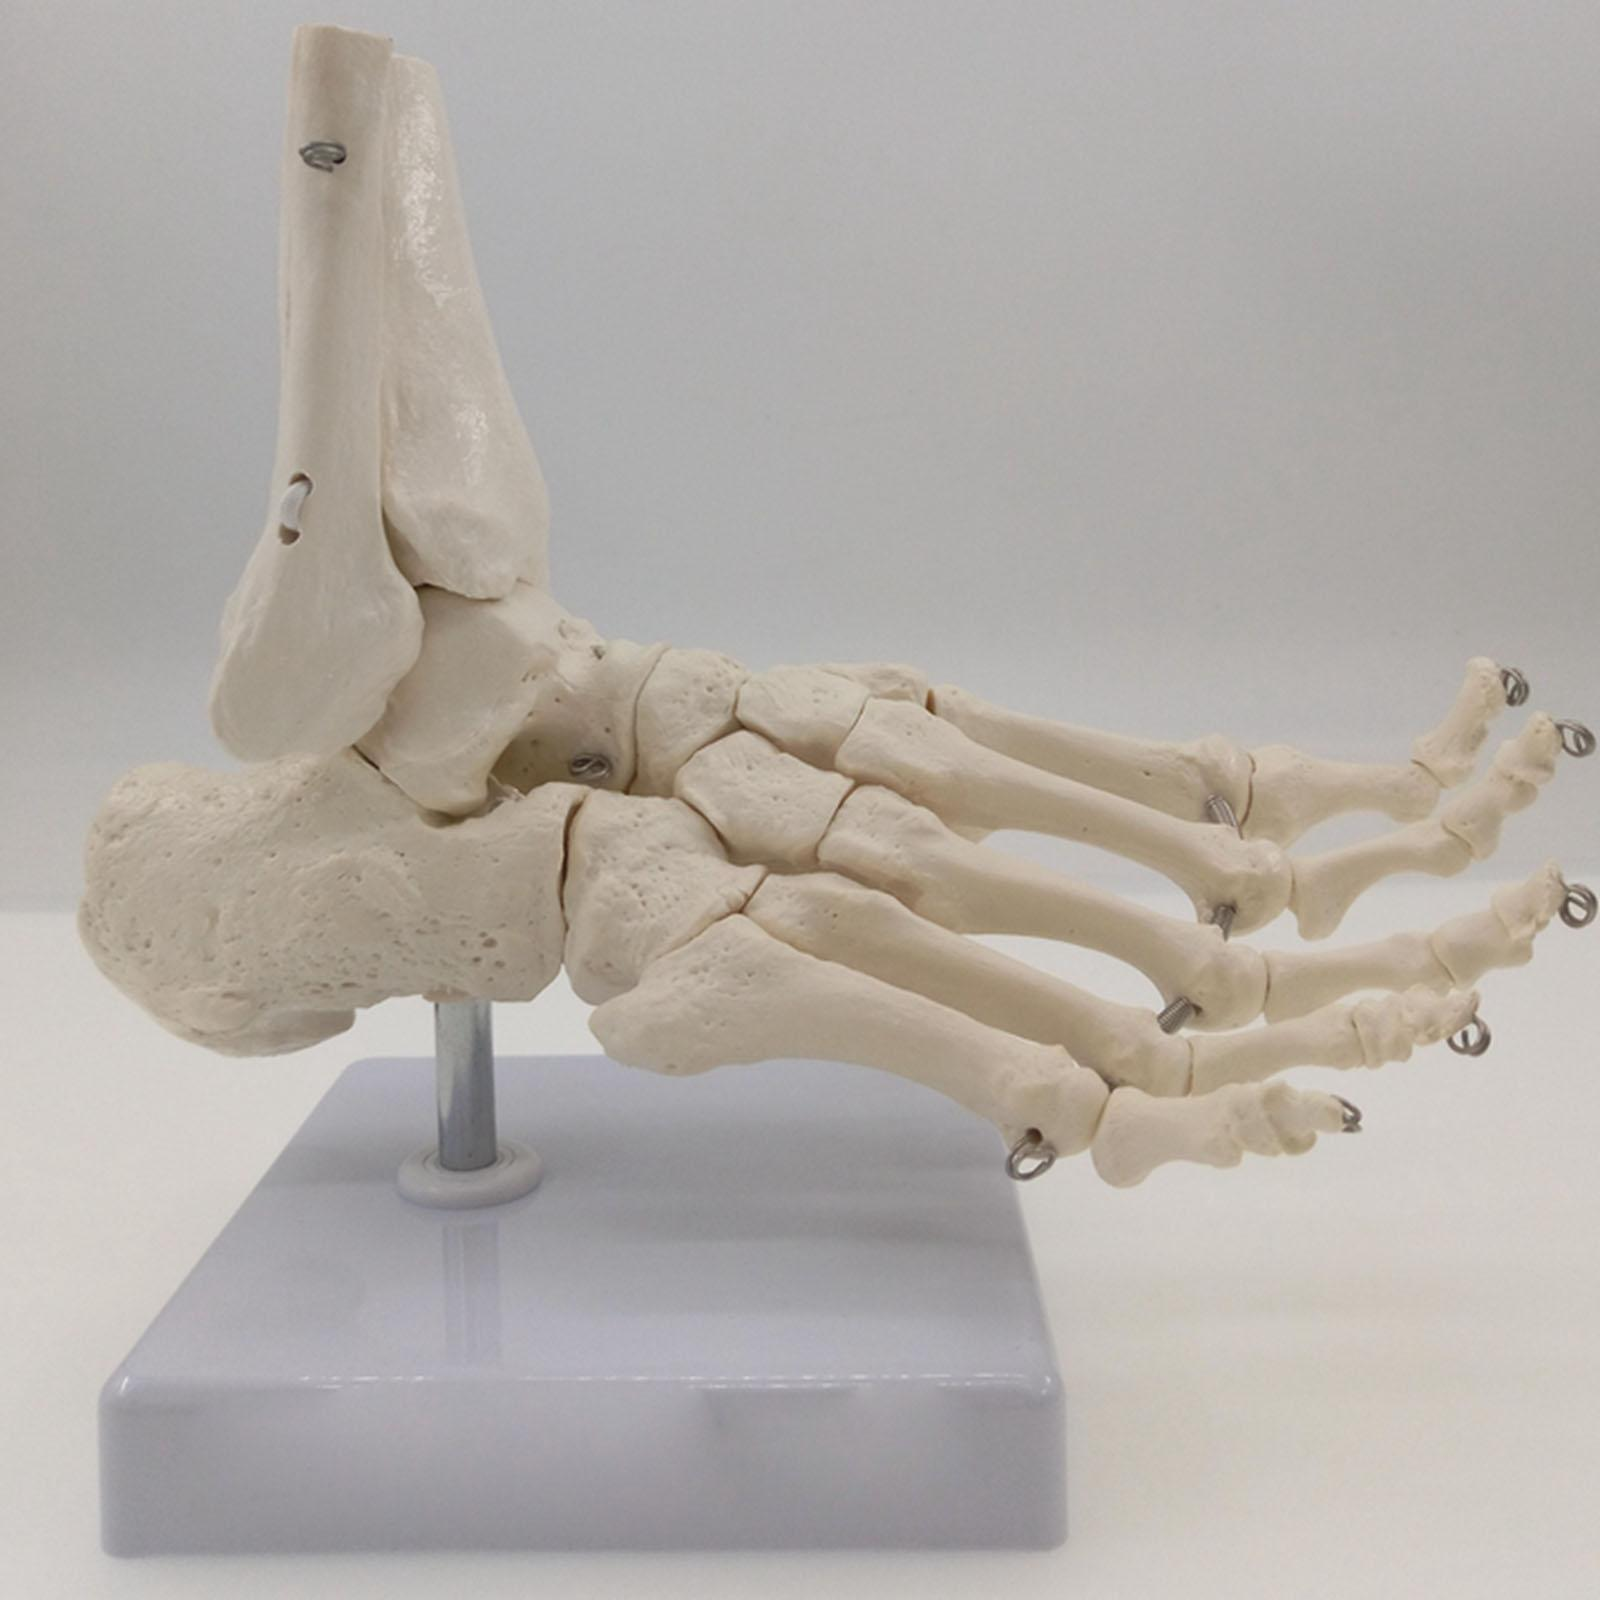 Foot and Ankle Joint Functional Anatomical Skeleton Model Medical Display Teaching School Life Size Teaching Resources image